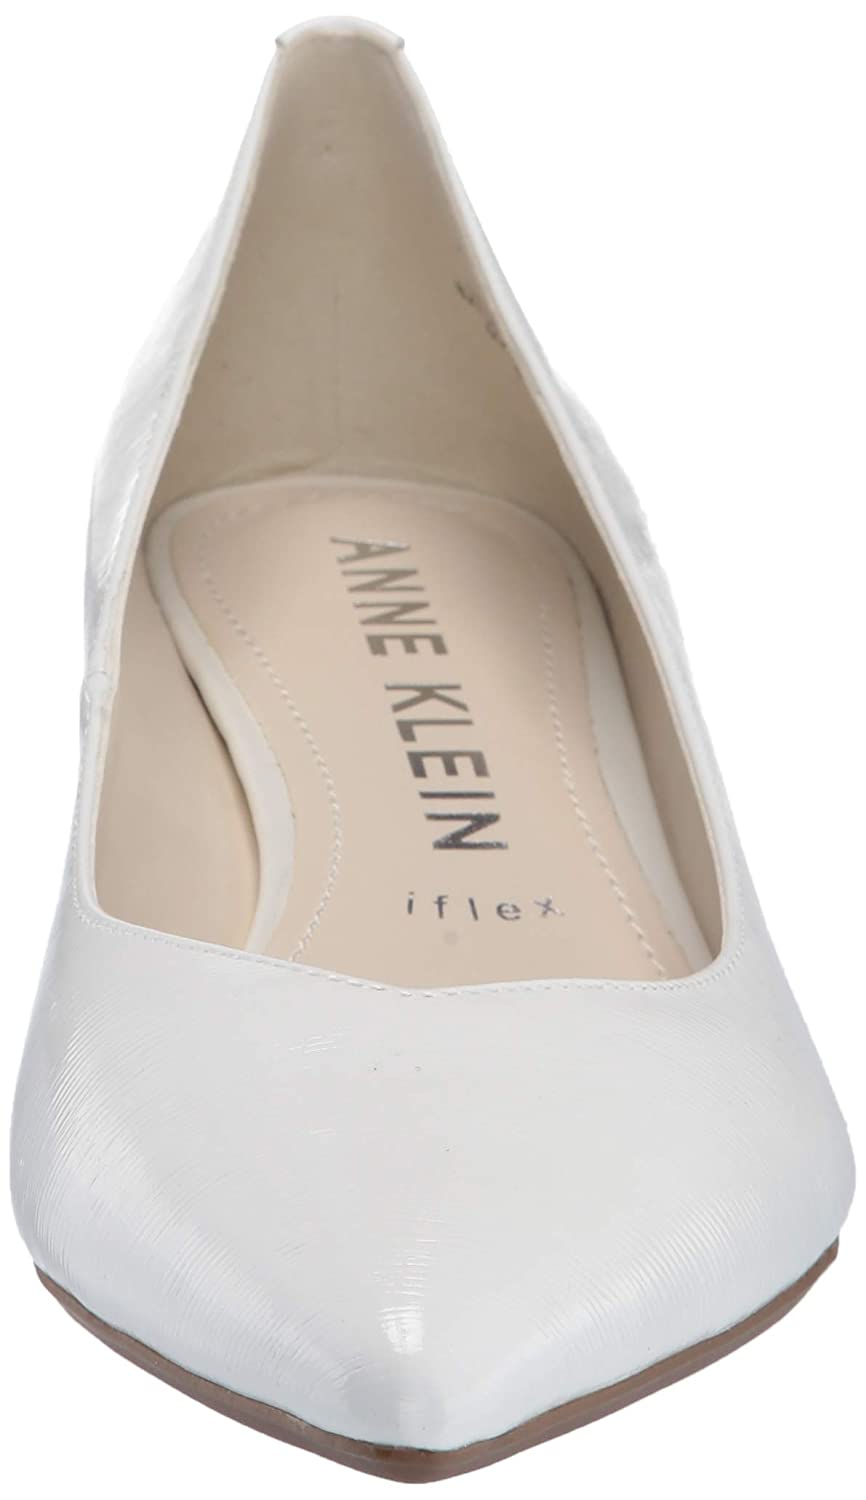 bd2a59f46108 Anne Klein Women s Norwood Pump  Buy Online at Low Prices in India -  Amazon.in